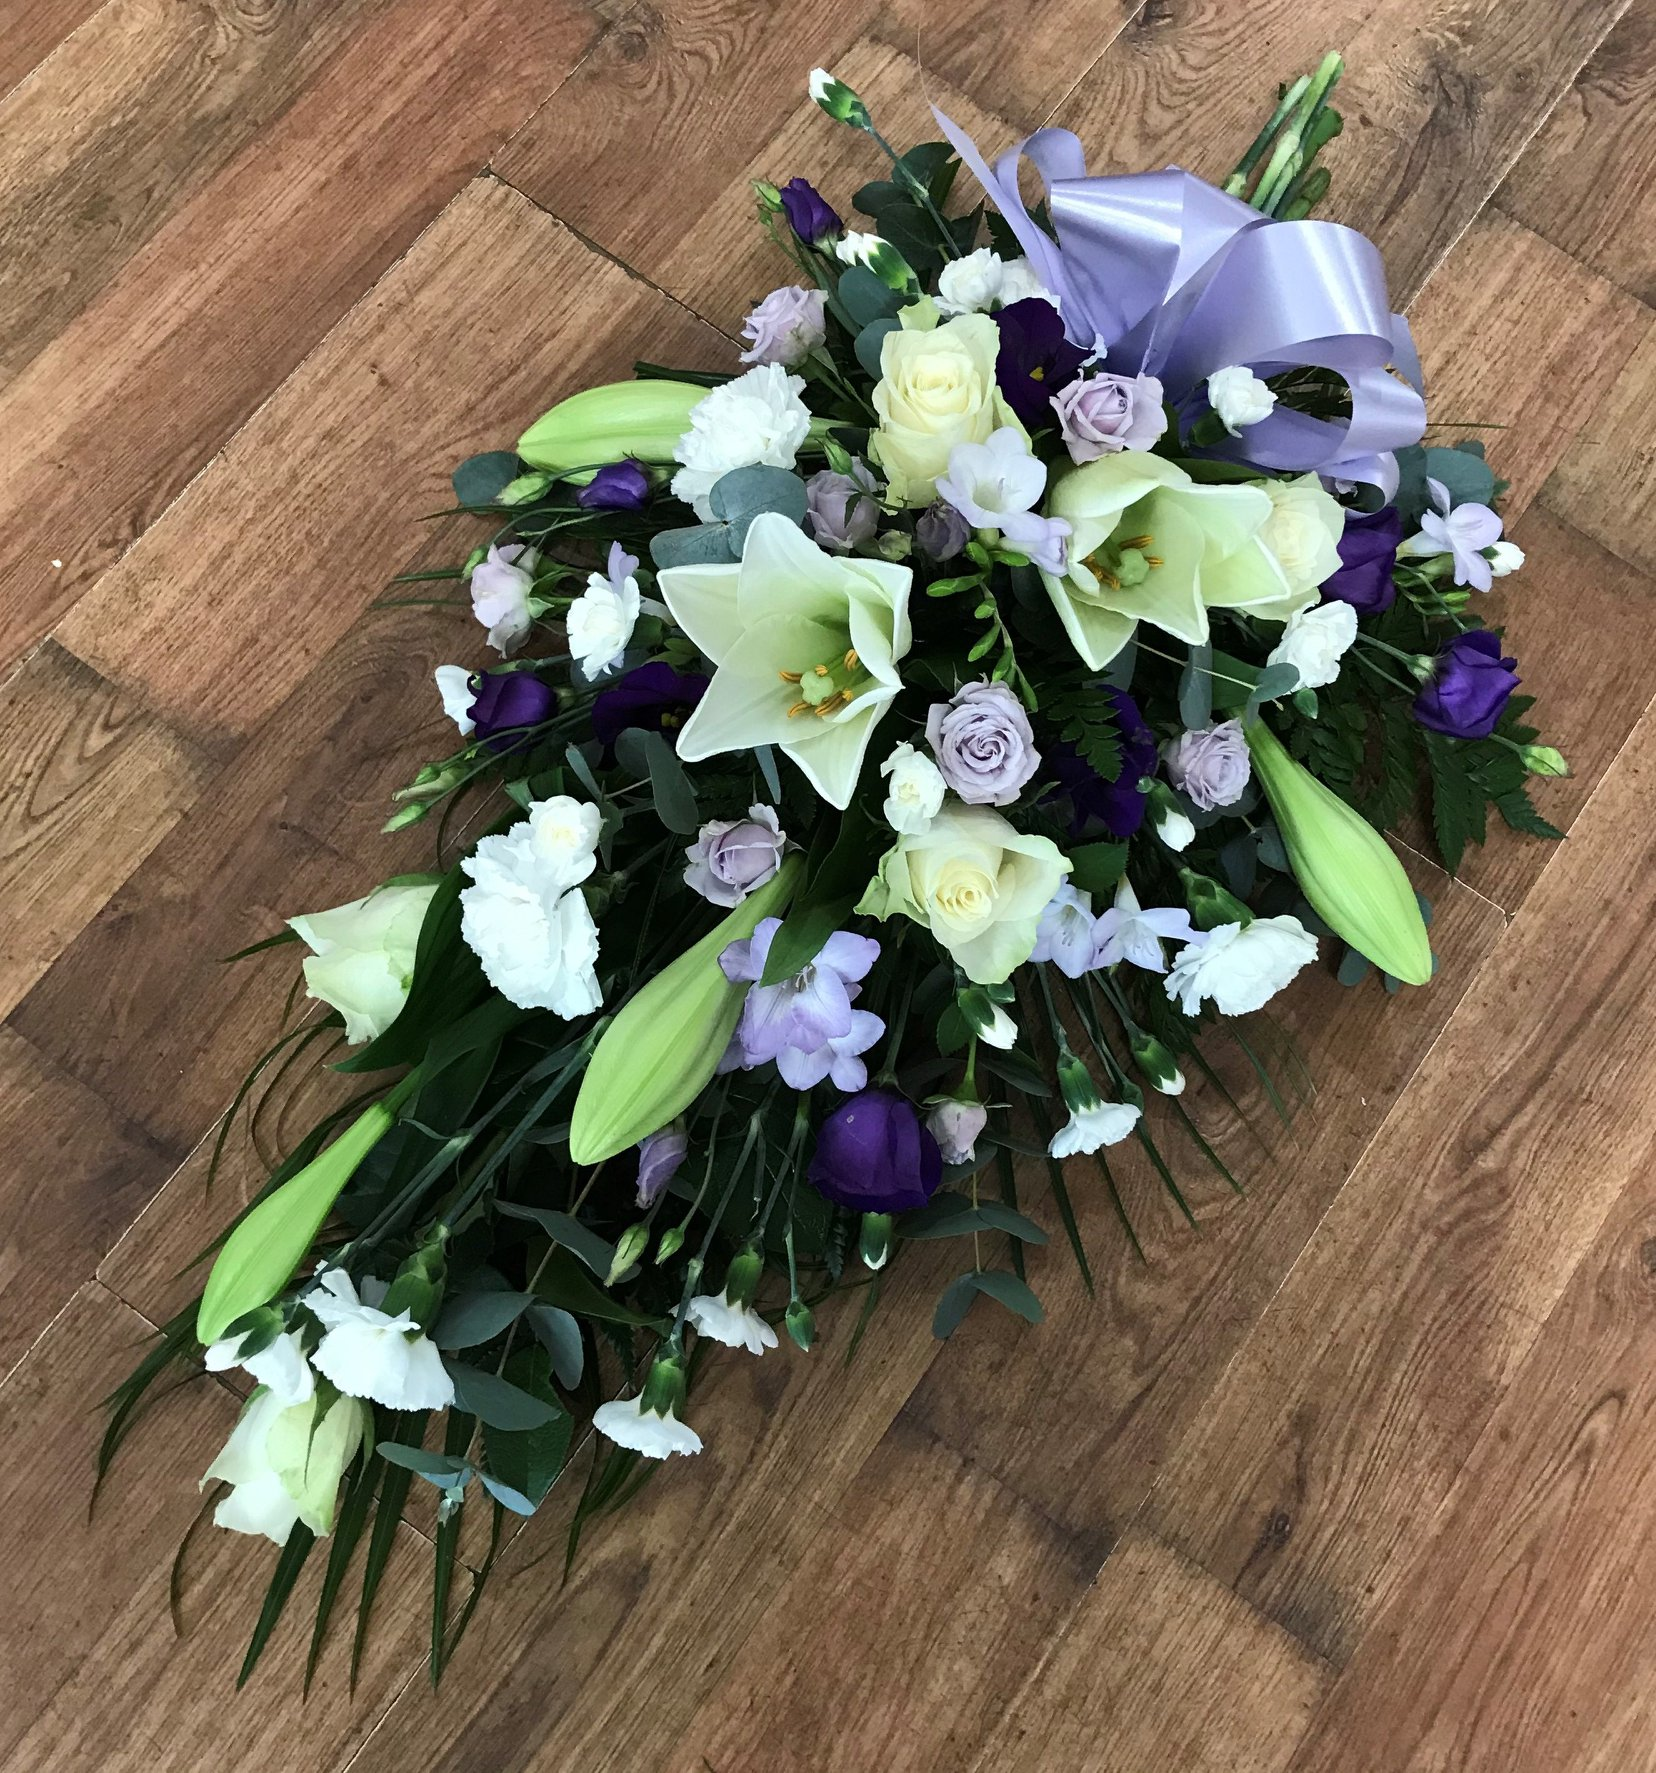 Lilac Funeral Sheaf from £50.00